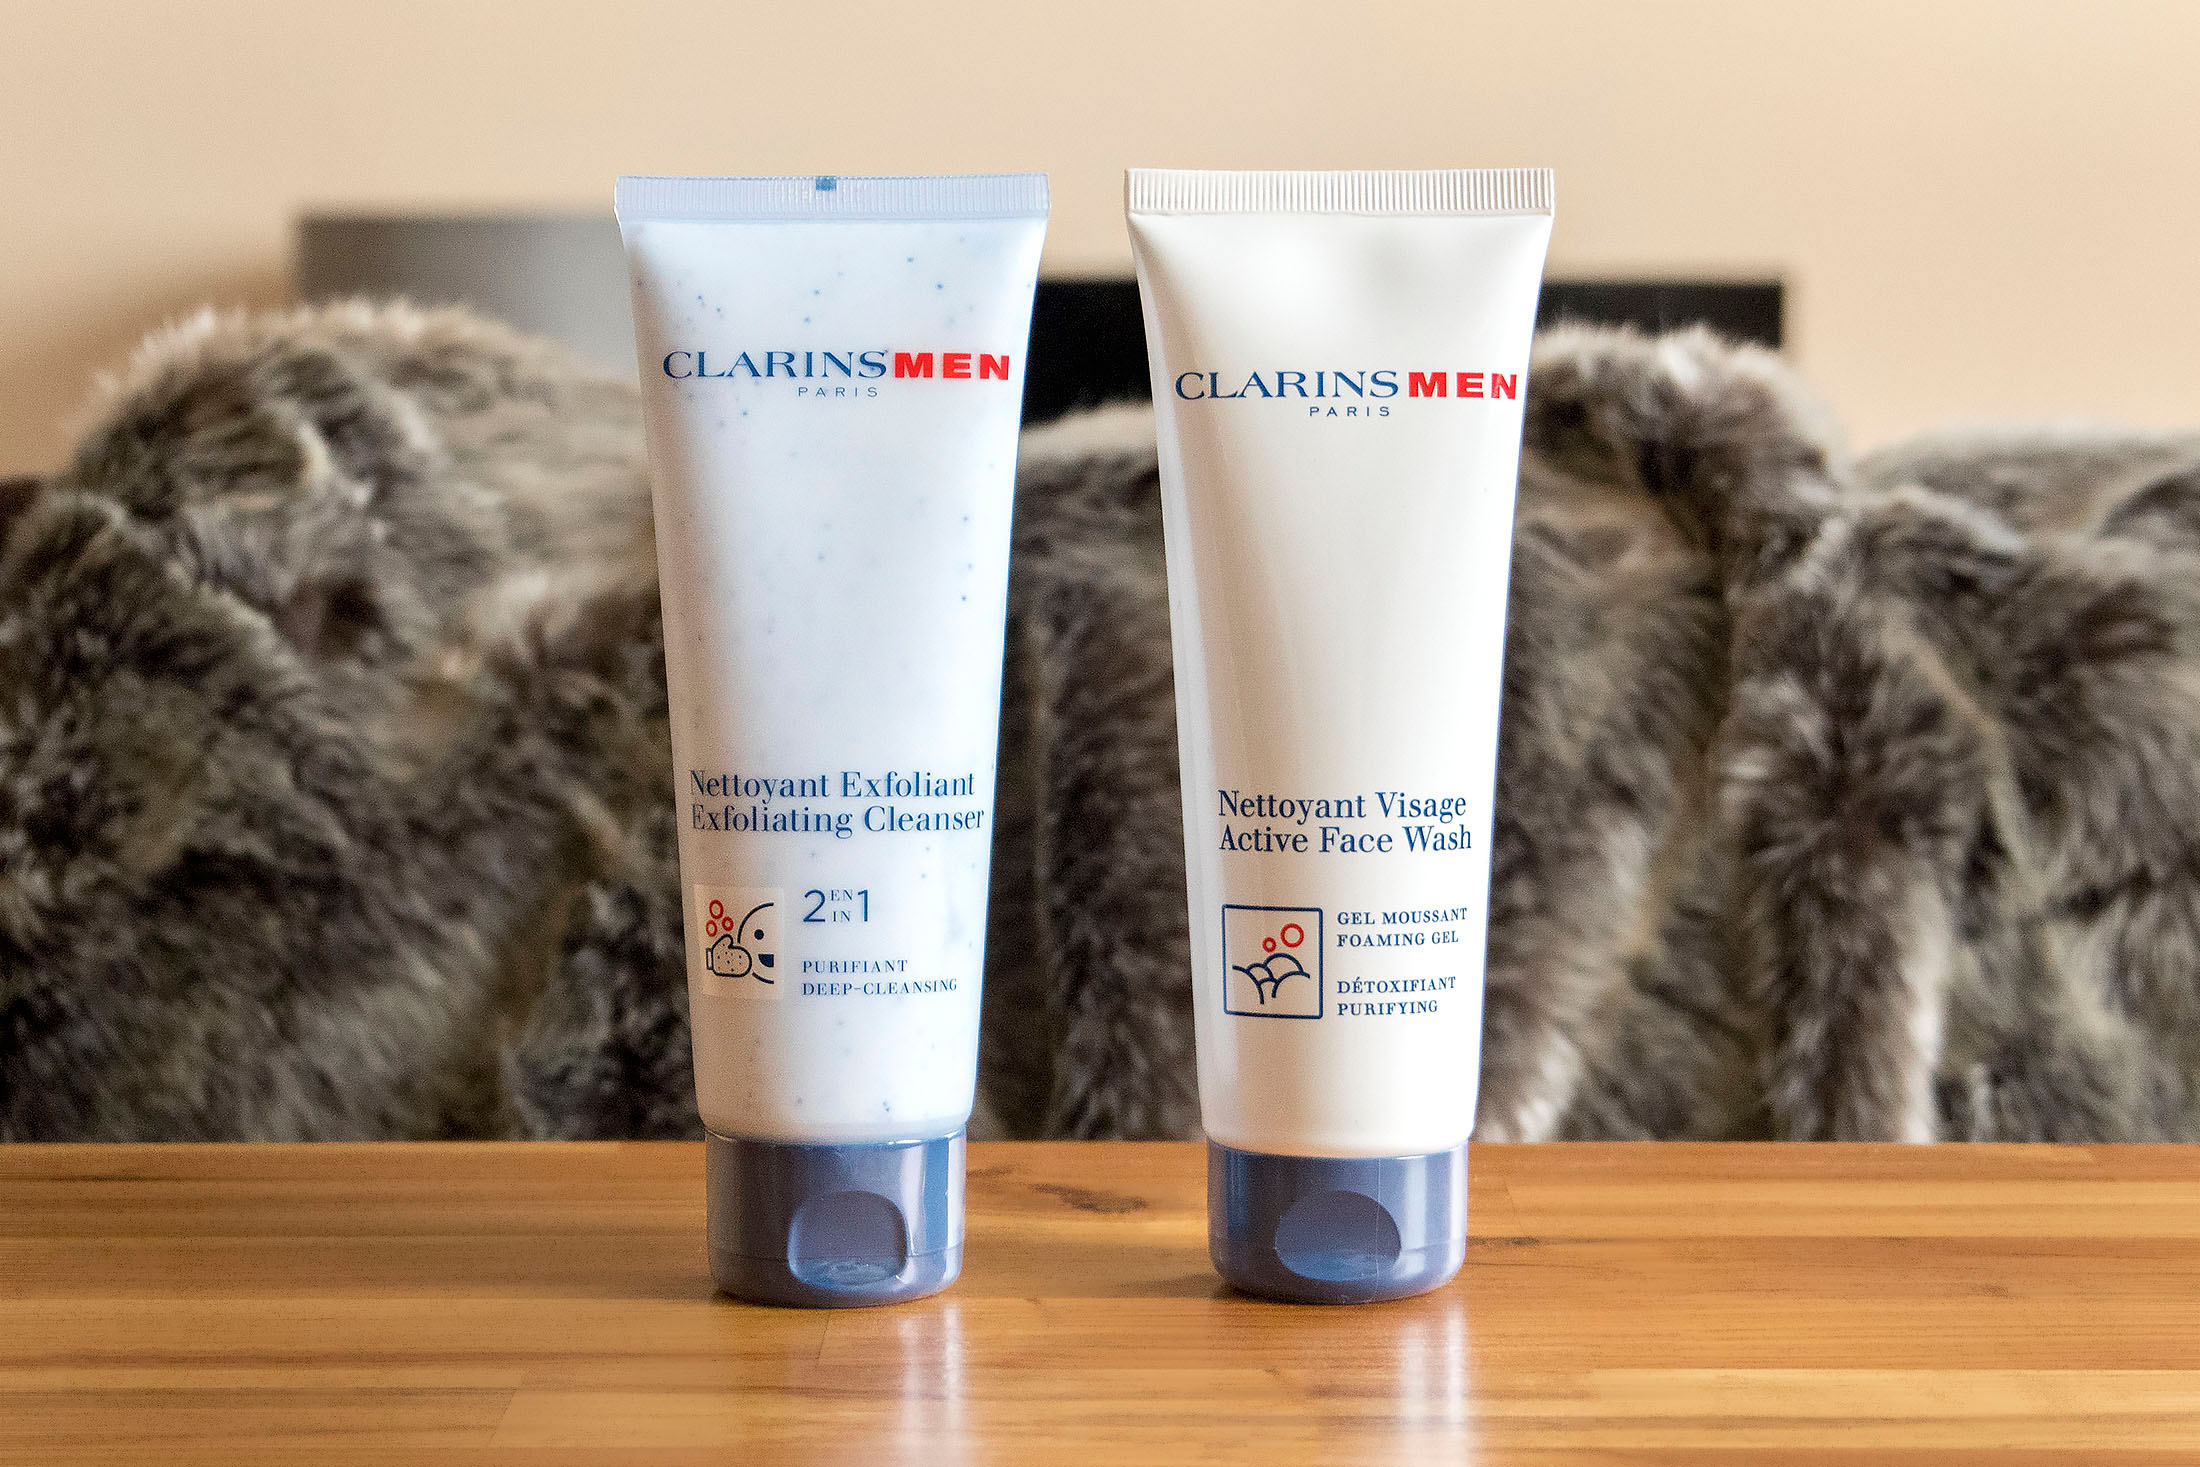 Finding The Best Face Wash for Men